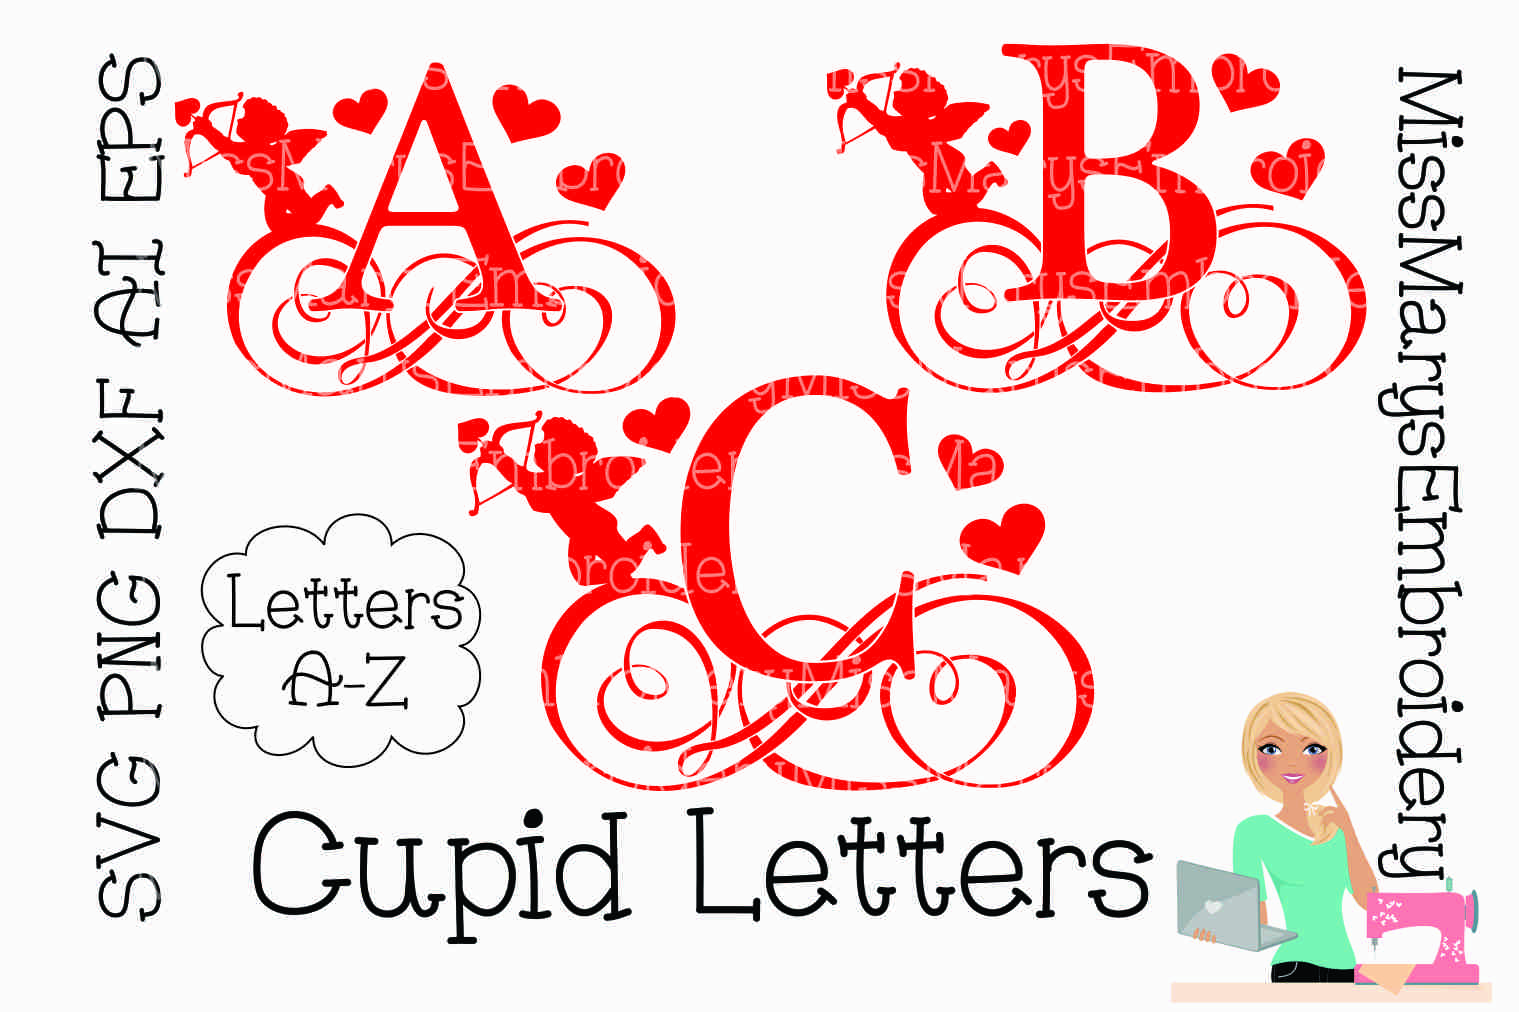 Cupid Swirl Letters SVG Cutting File PNG DXF AI EPS example image 1